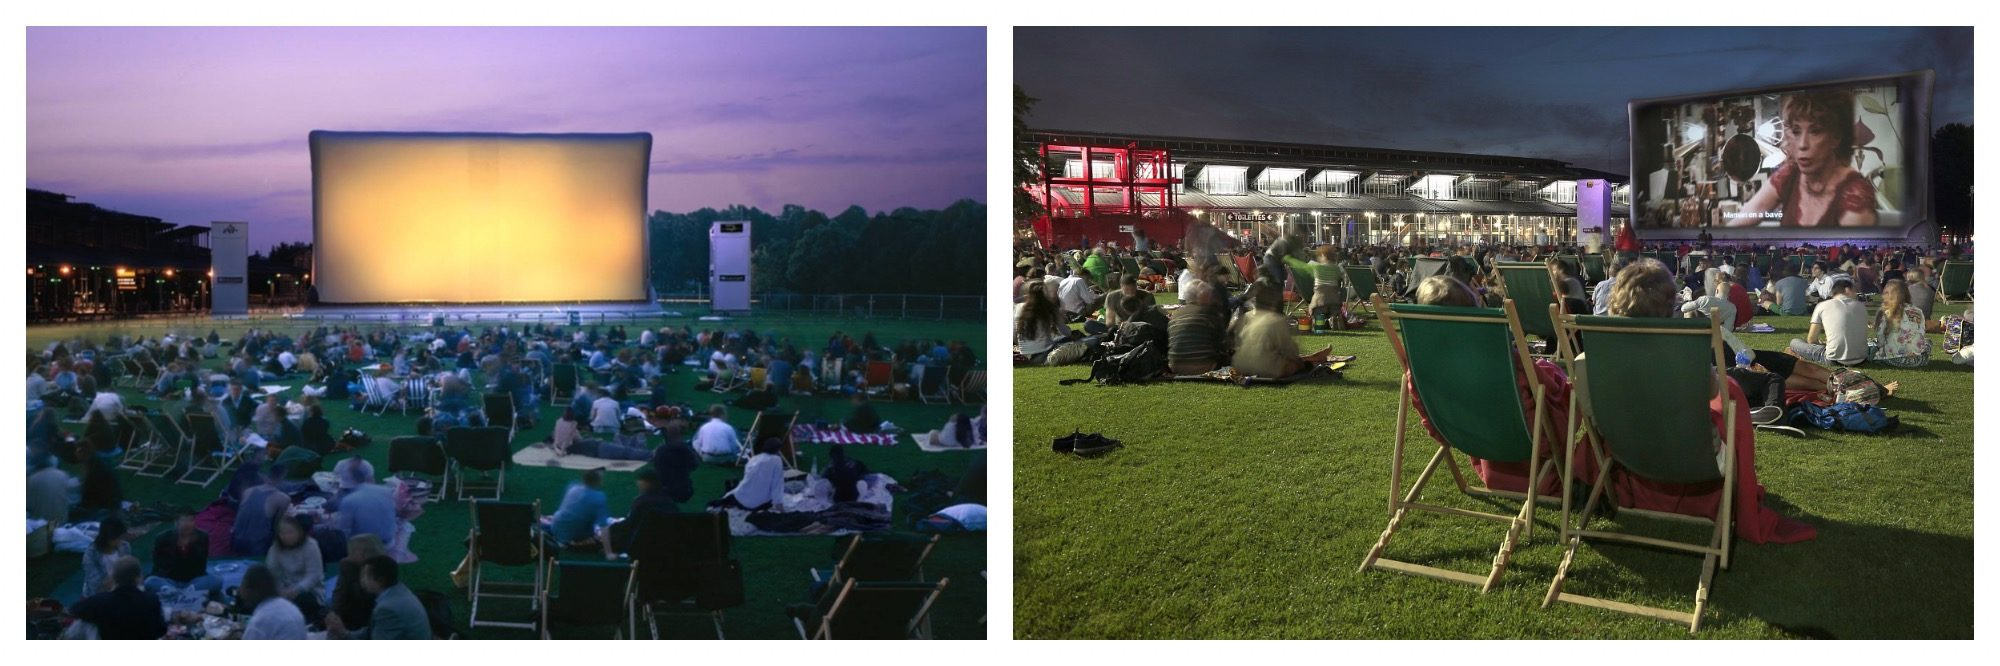 Outdoor cinema with deckchairs in a field in summer in Paris at La Villette.